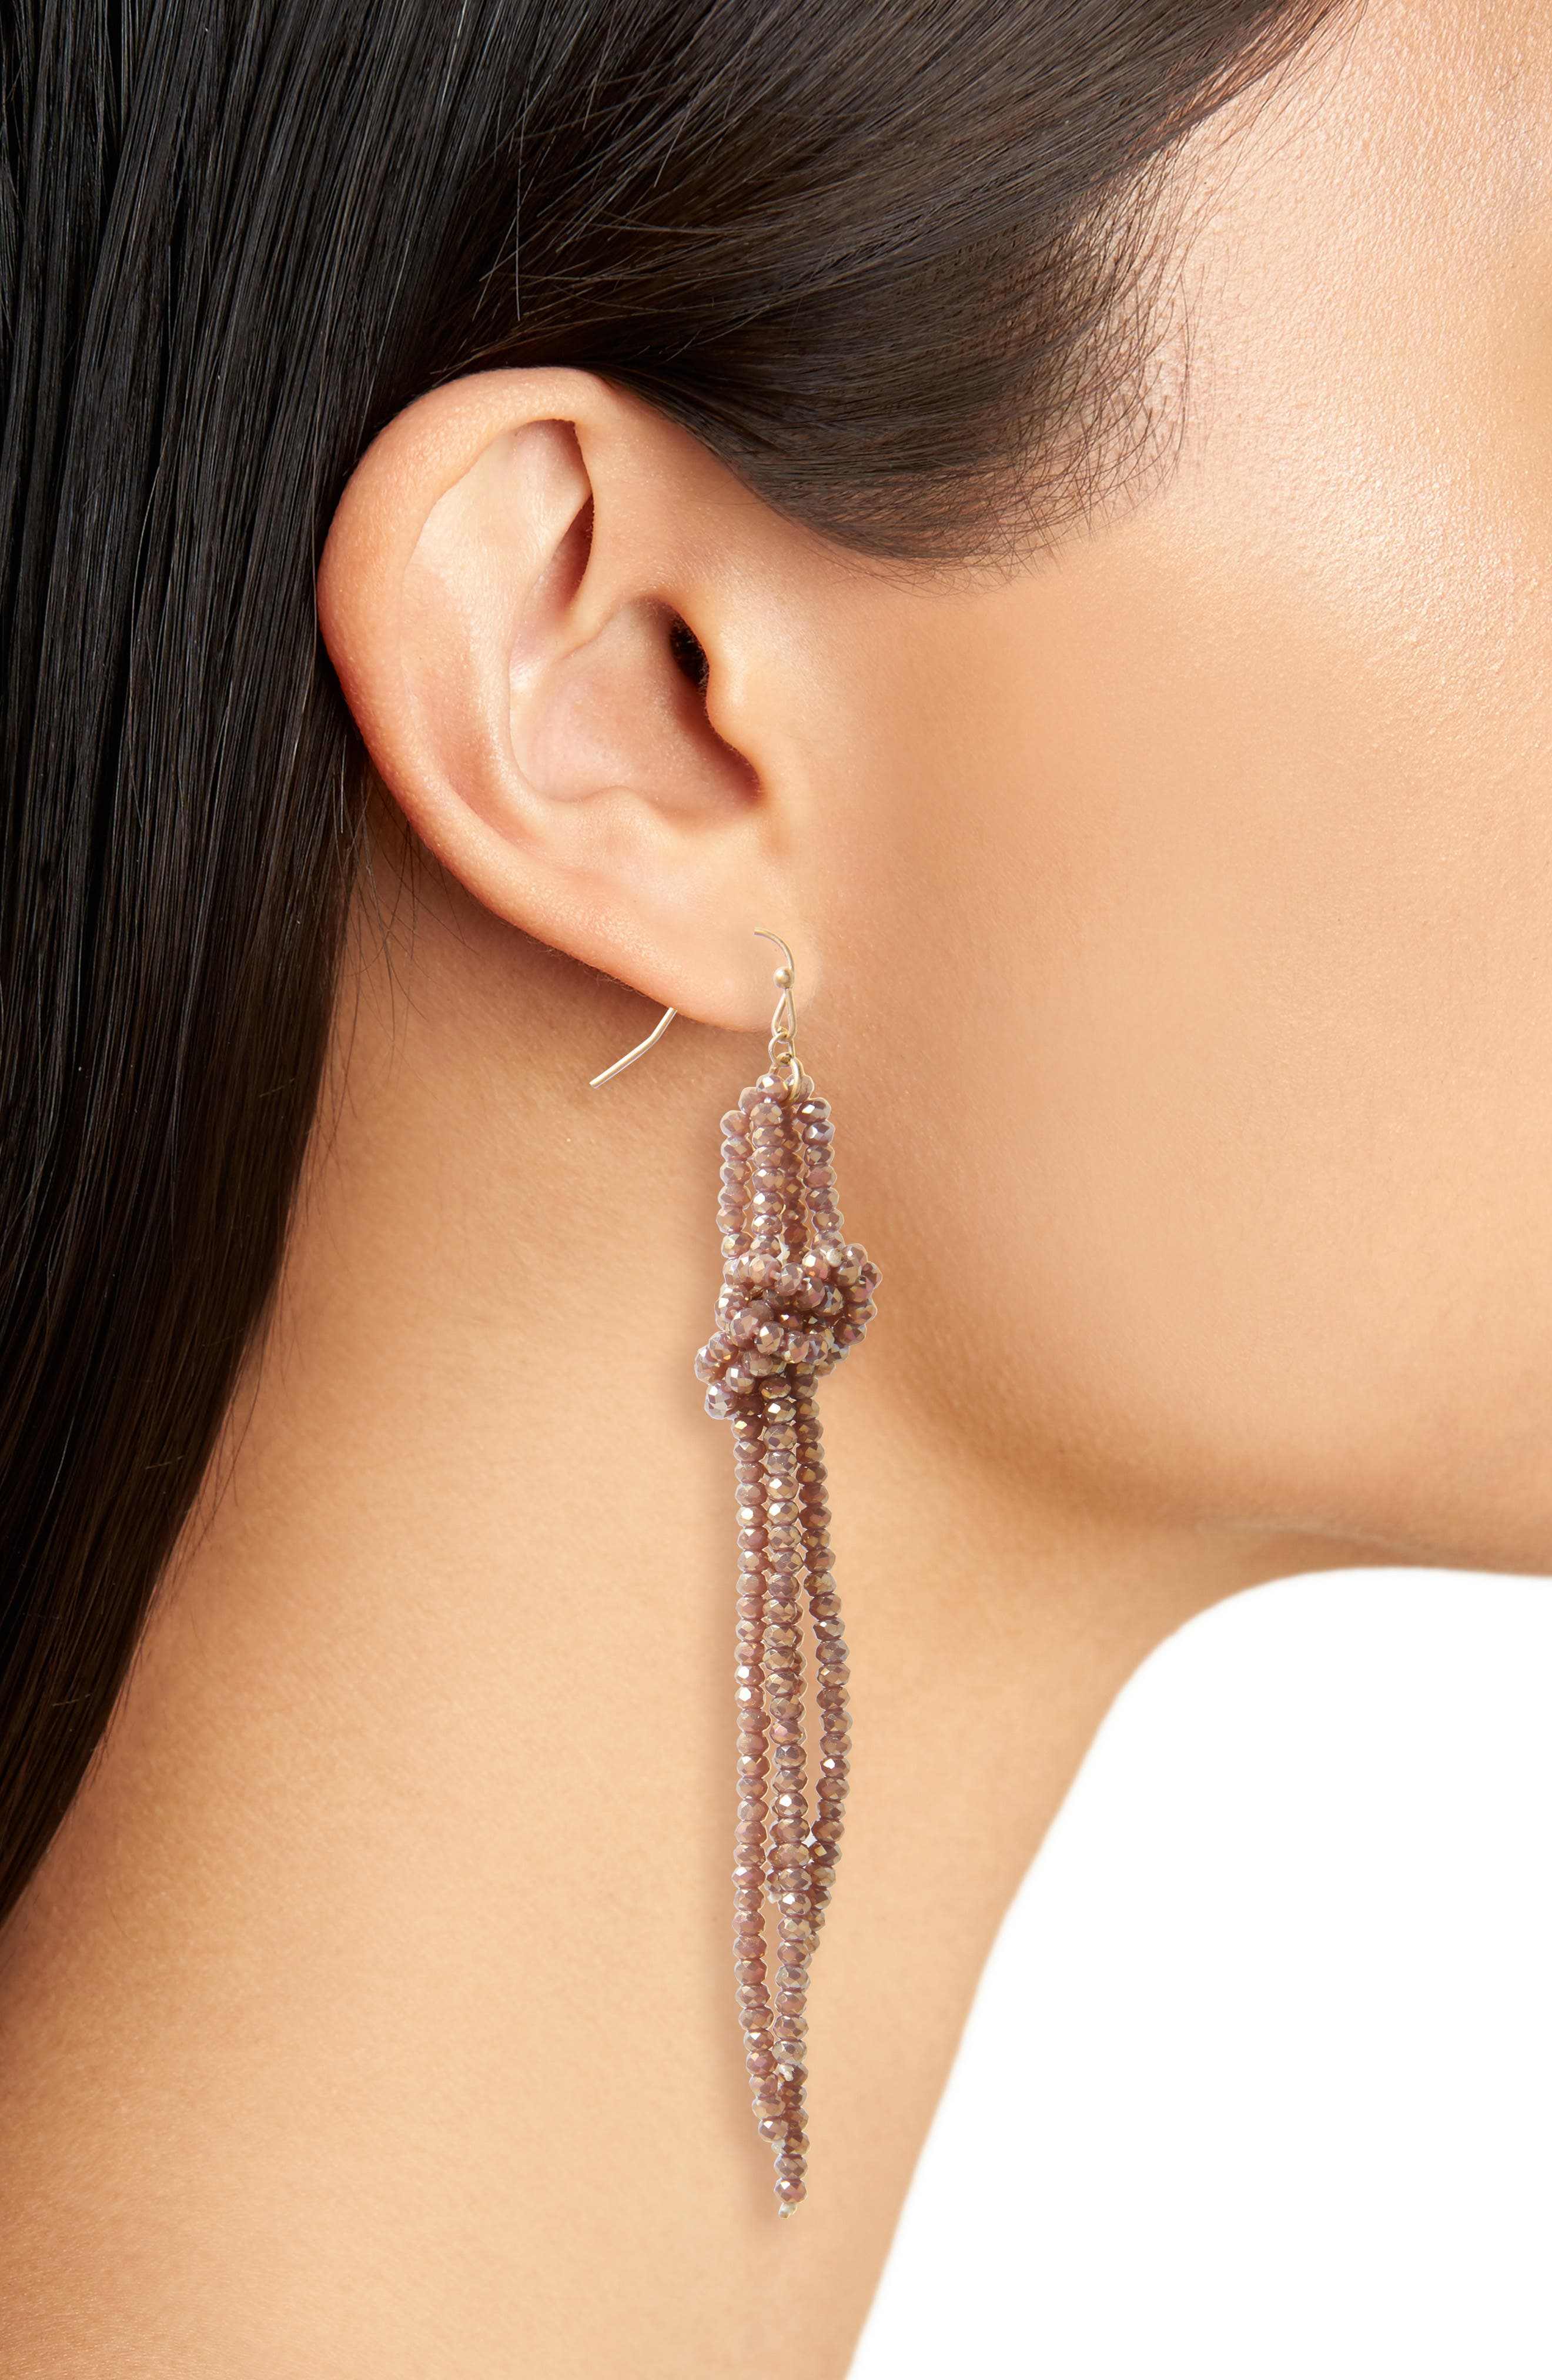 Crystal Knot Tassel Earrings,                             Alternate thumbnail 2, color,                             LIGHT PURPLE